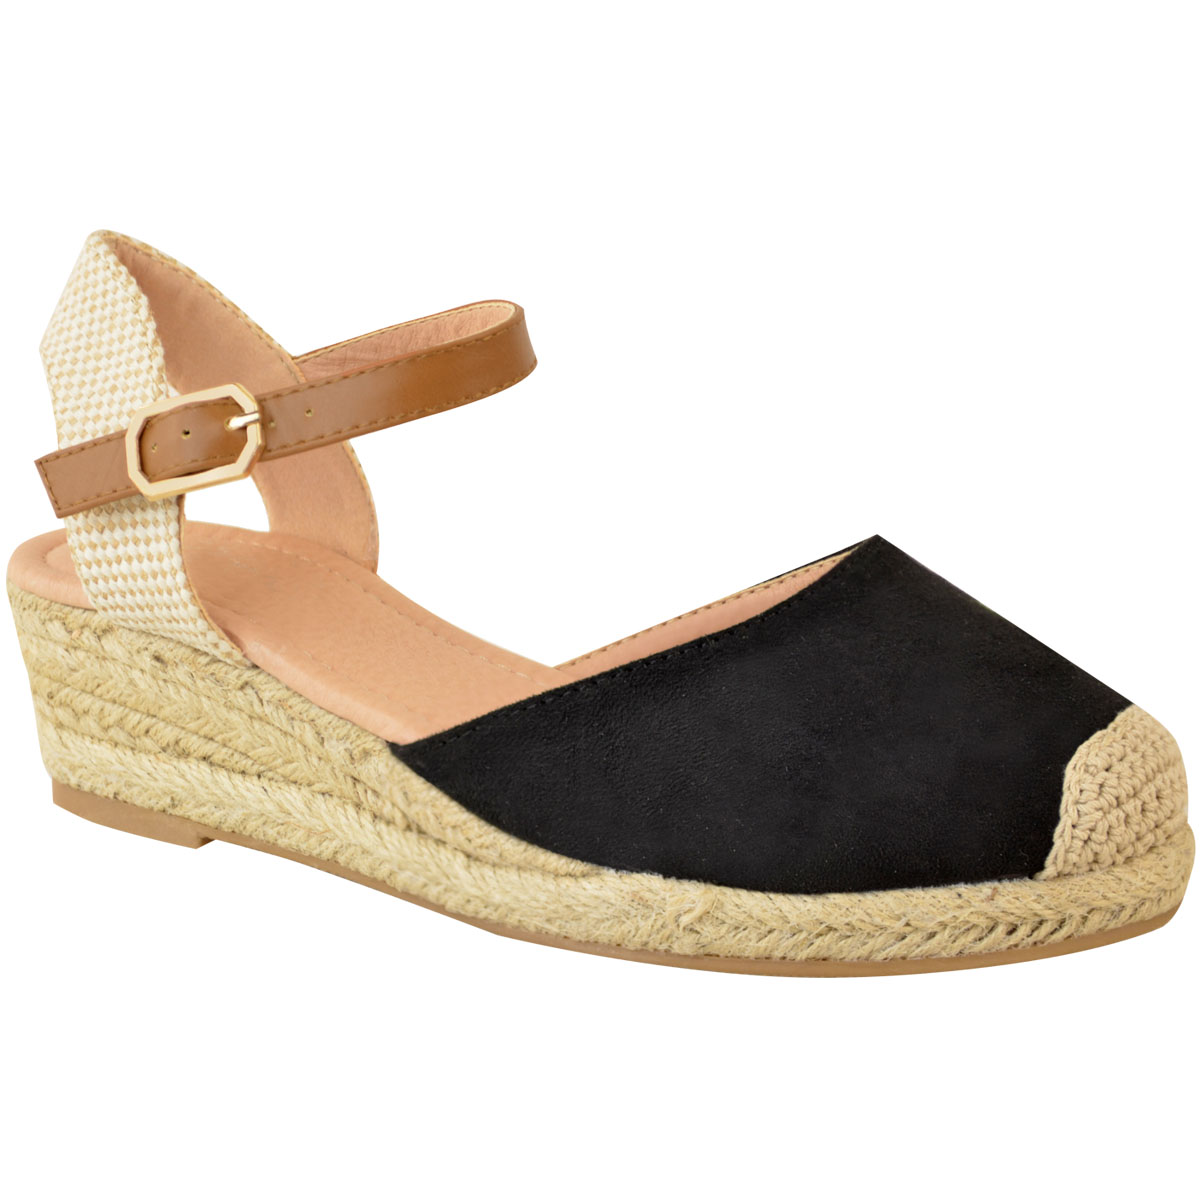 Womens Ladies Low Heel Wedge Espadrilles Summer Sandals Casual Holiday Size New